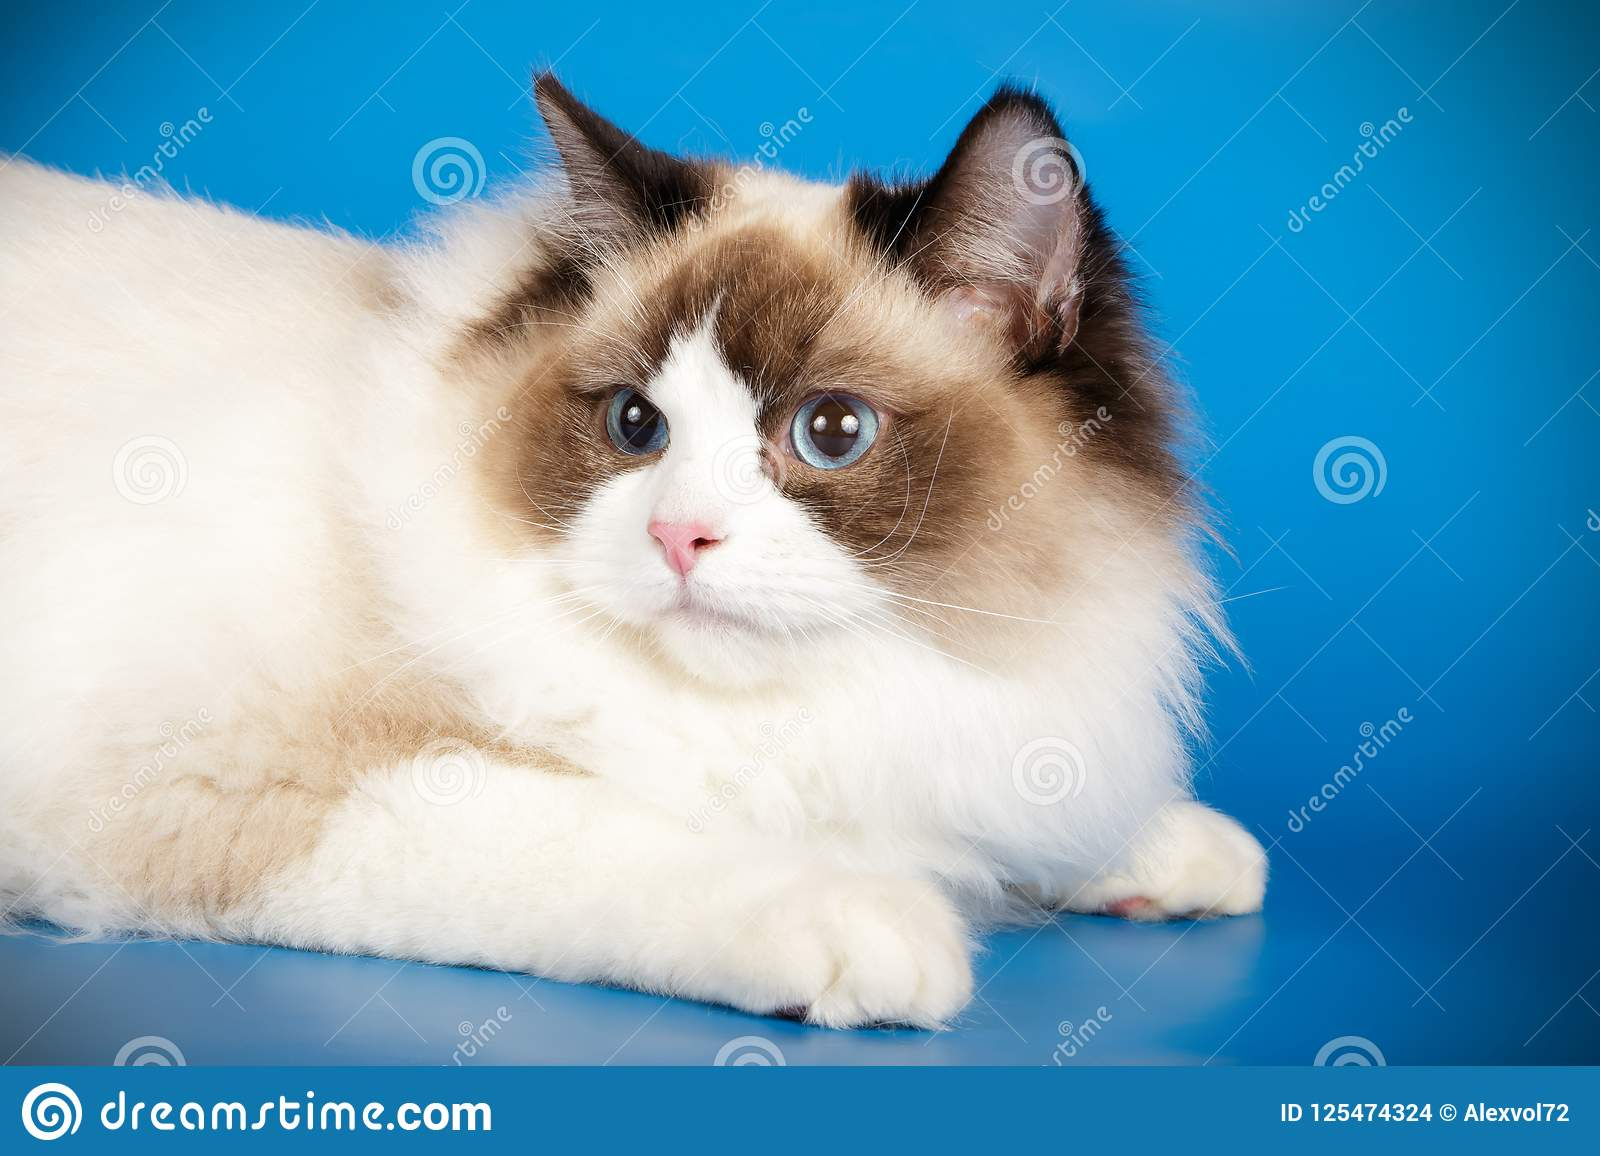 Ragdoll Cat On Colored Backgrounds Stock Photo Image Of Furry